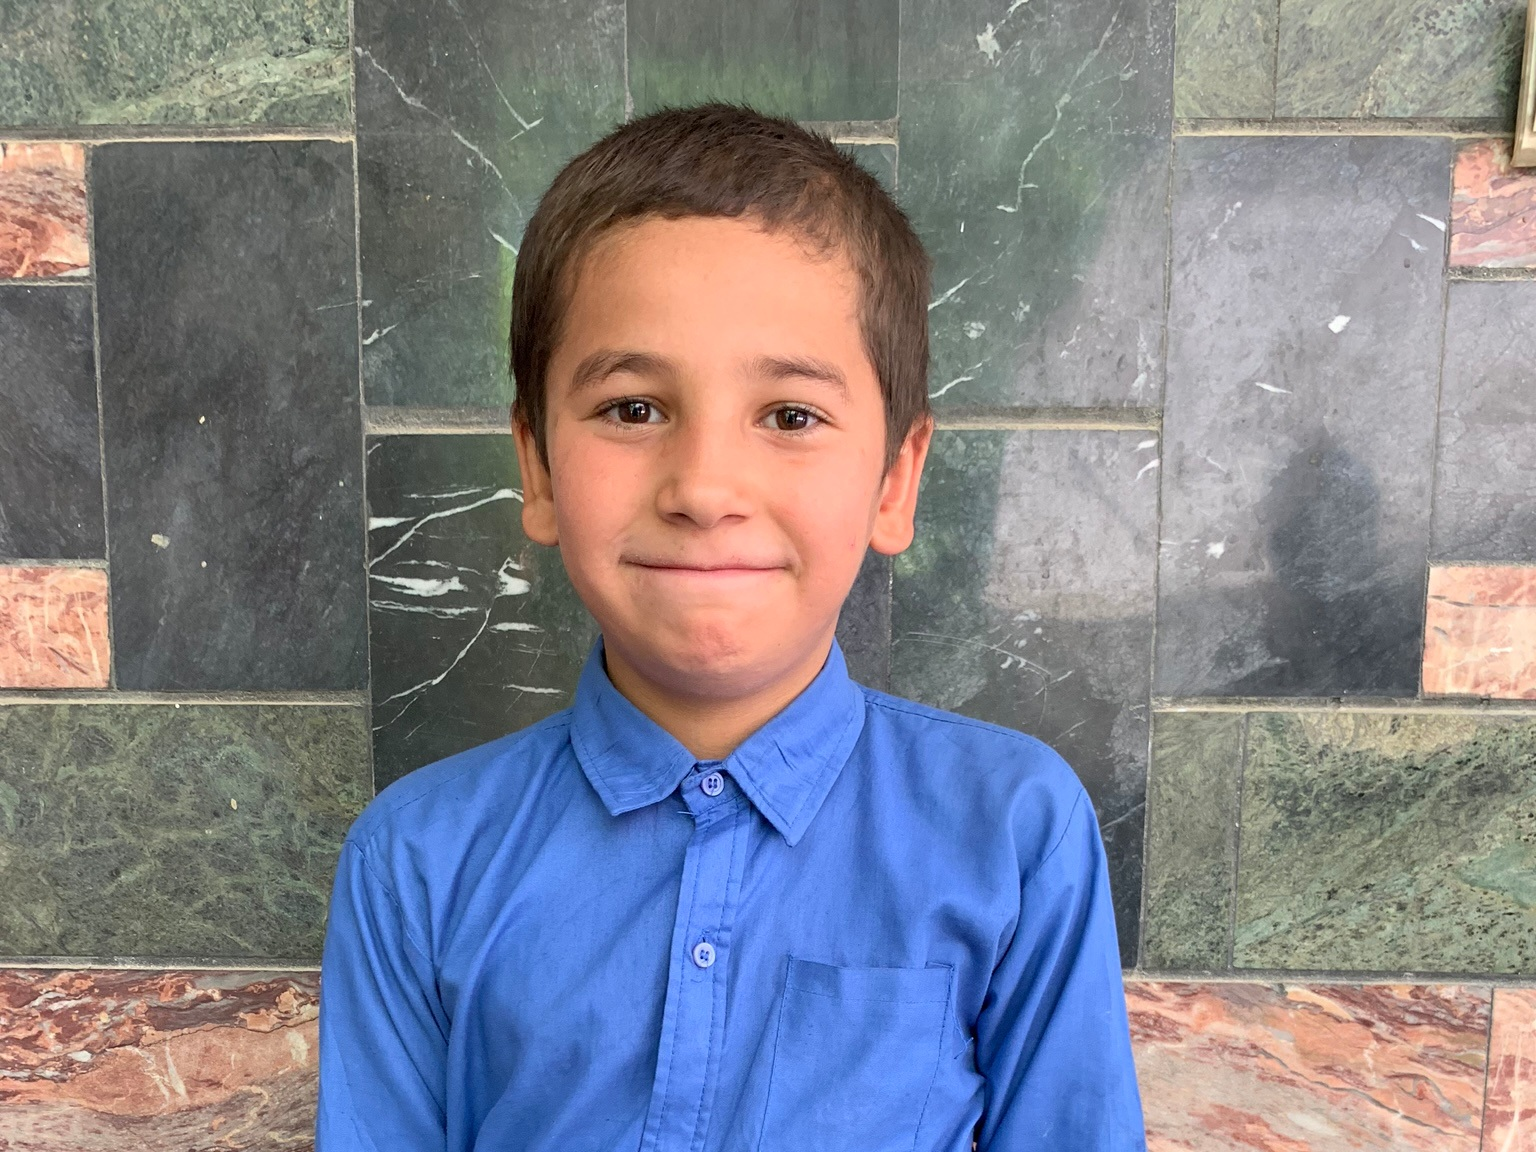 Waheedulah, Age 10 - Waheedulah has 4 siblings. His mother and father are both unemployed at this time.BE WAHEEDULAH'S PARTNER>